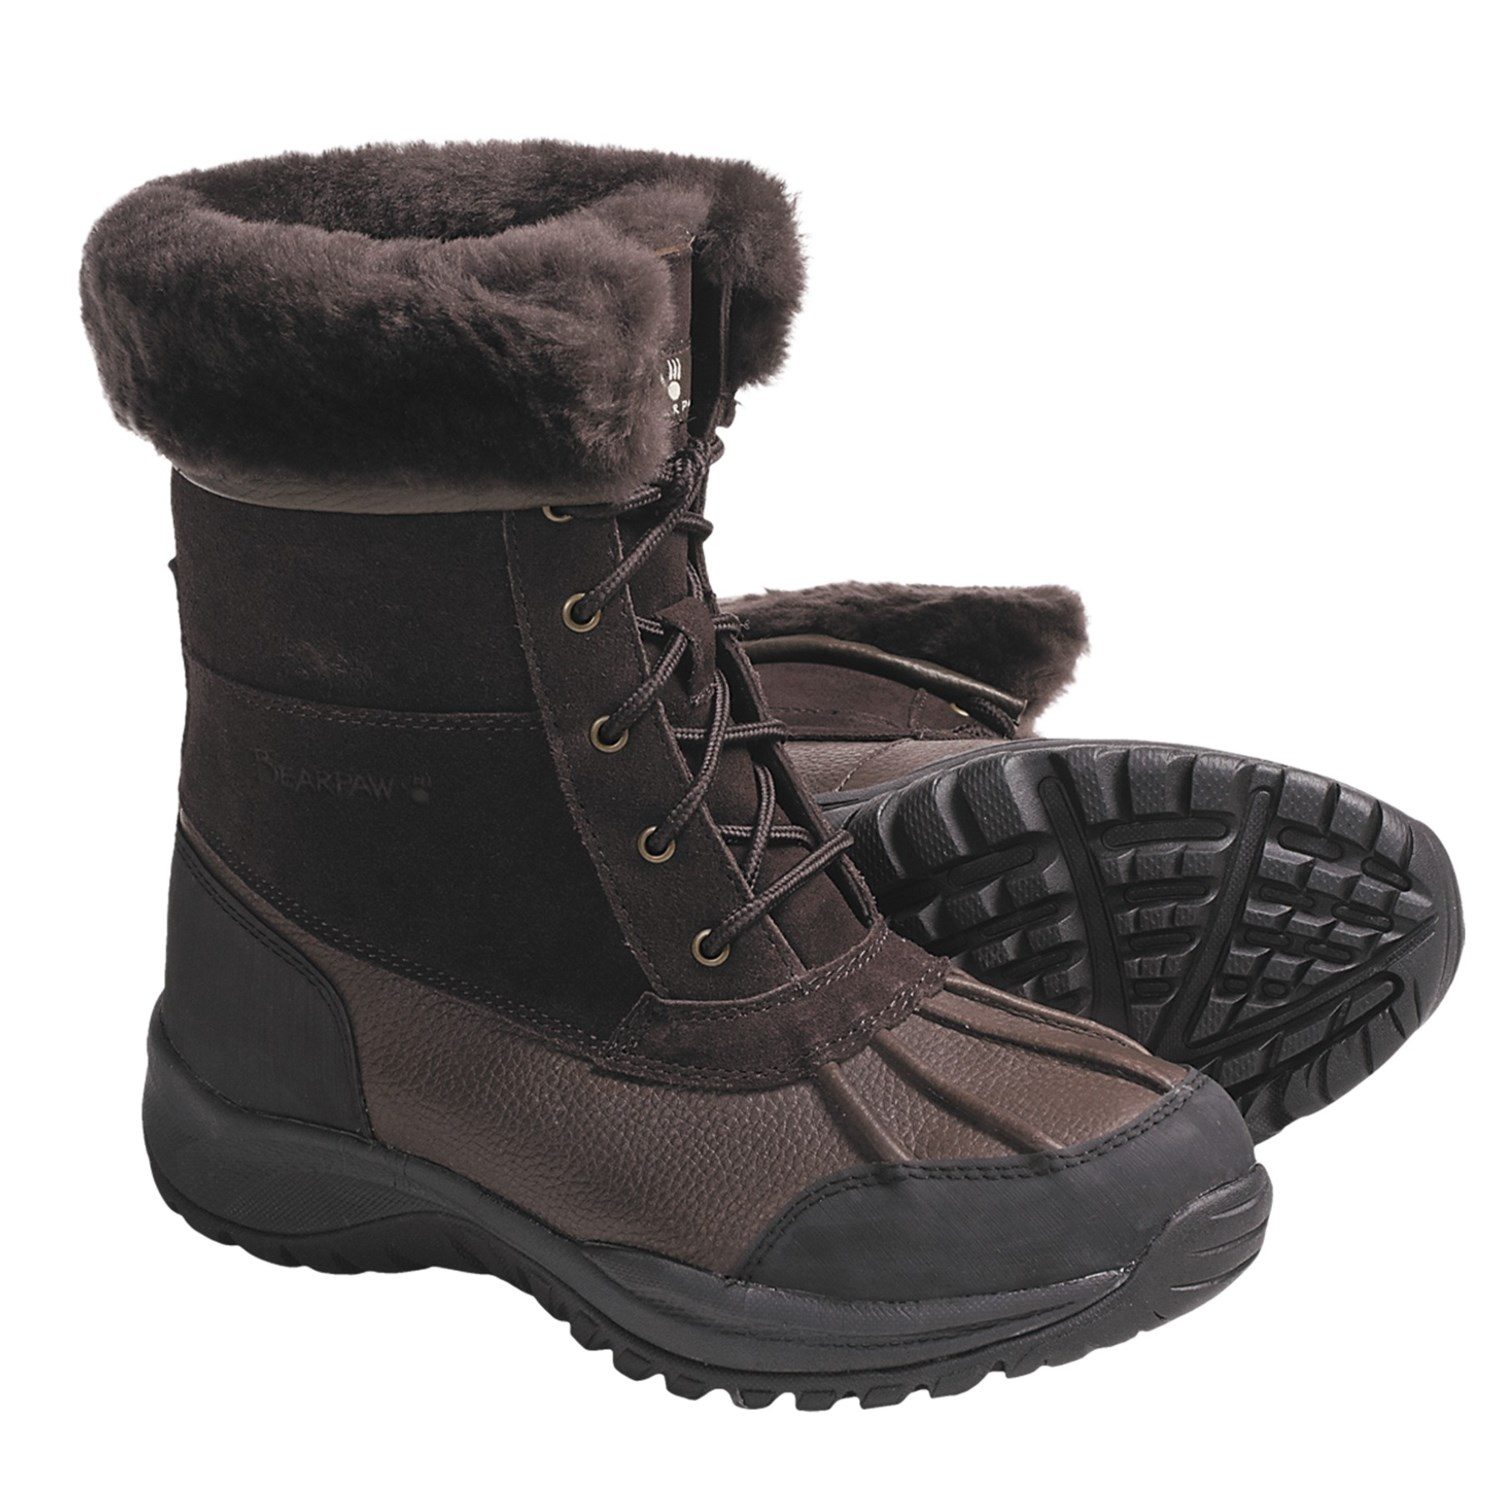 bearpaw stowe winter boots leather for save 50